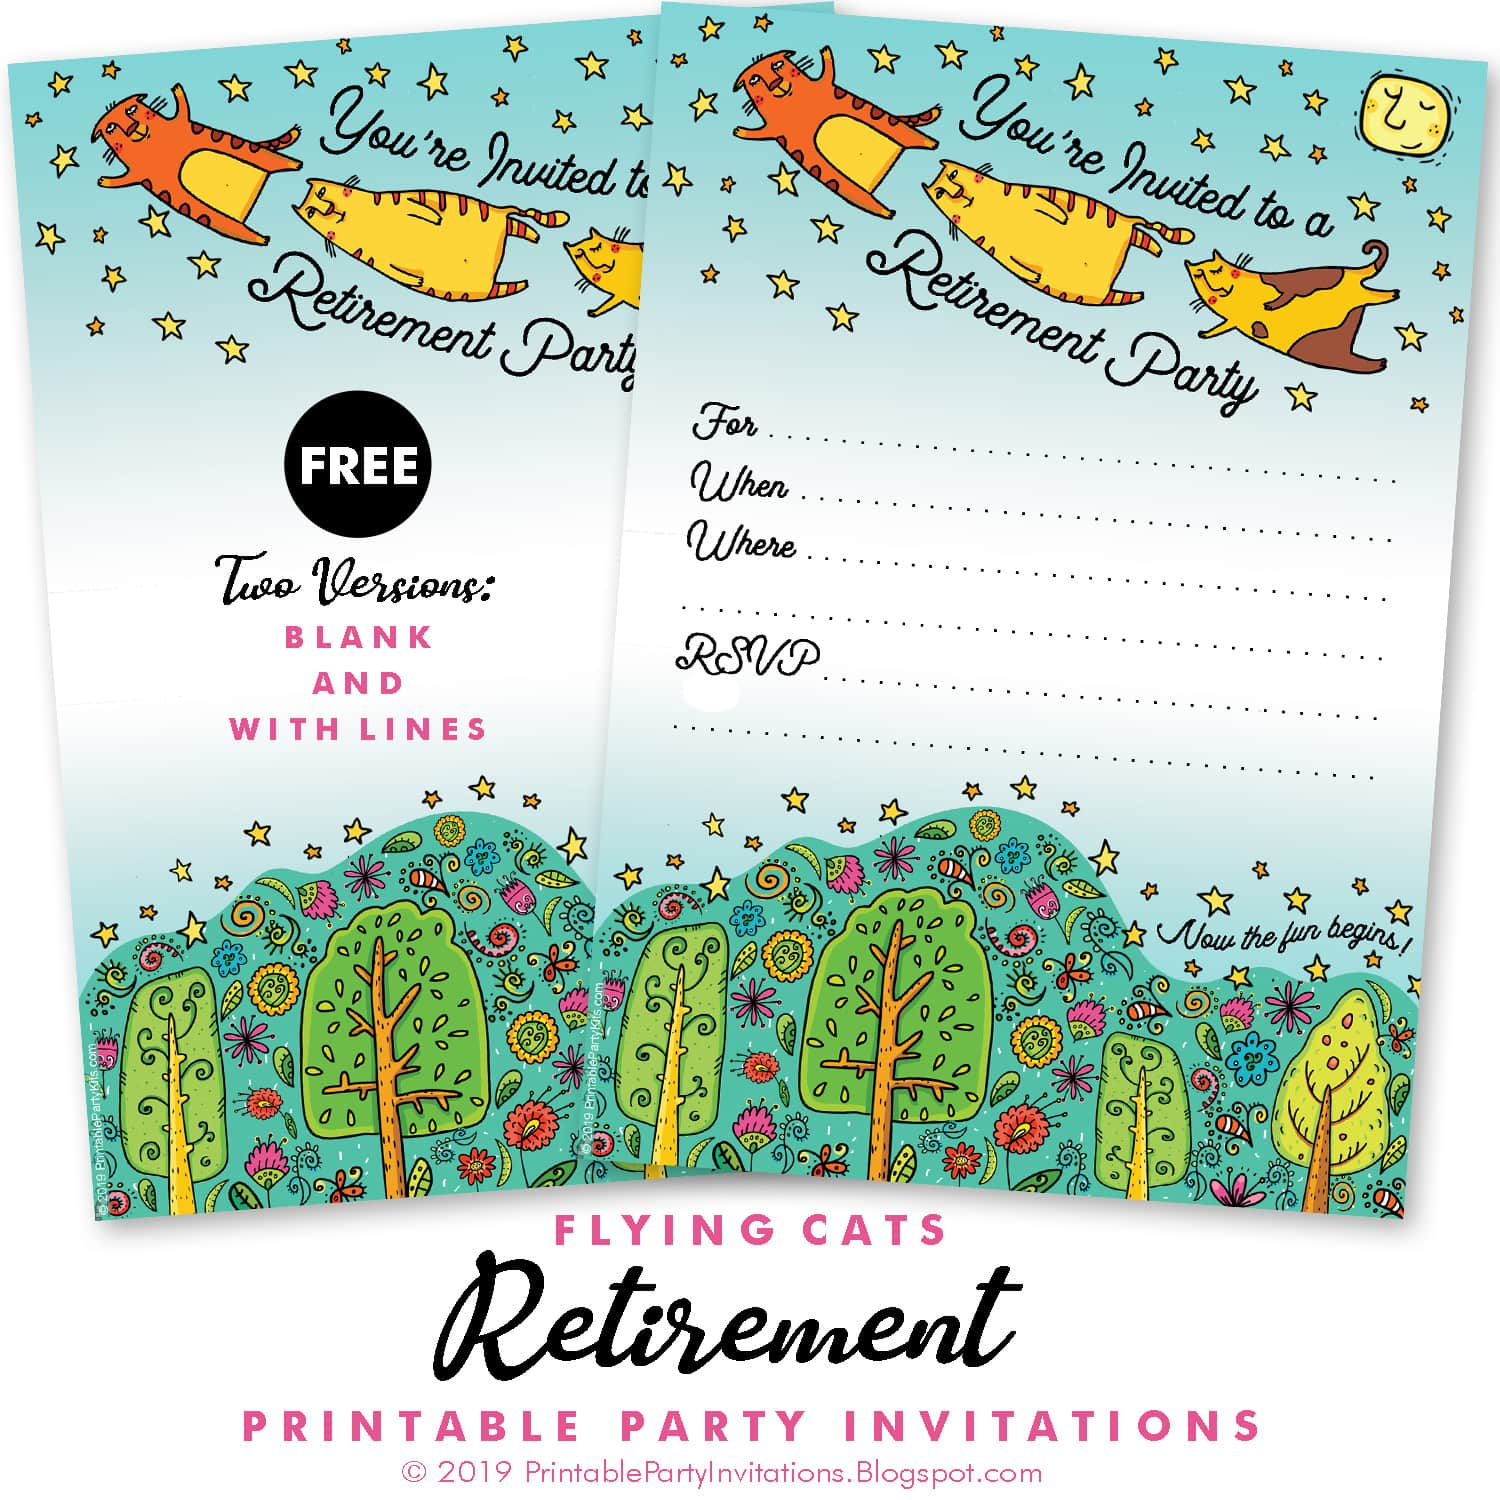 photograph about Free Printable Retirement Cards identified as Cant discover subsution for tag [short article.entire body]--\u003e Totally free